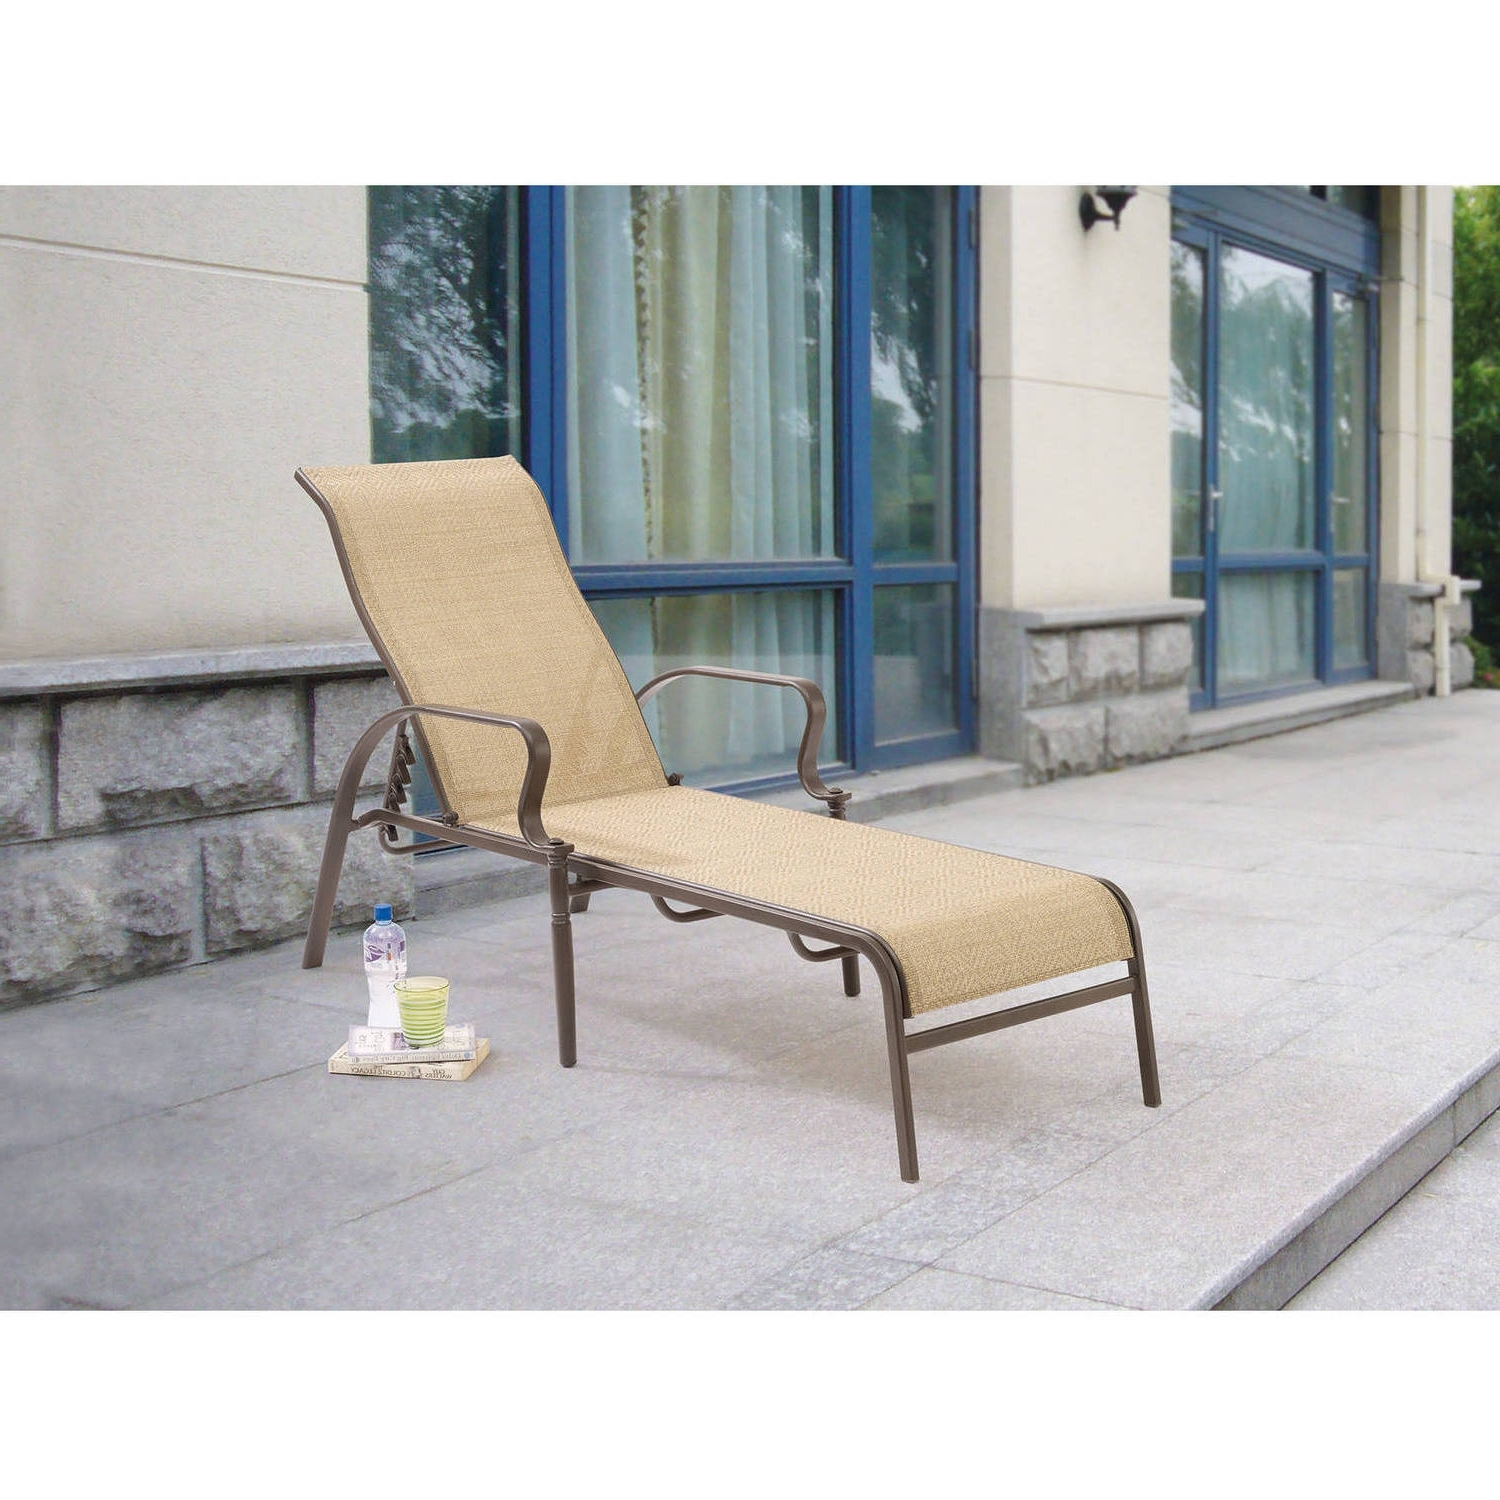 Popular Mainstays Wesley Creek Sling Outdoor Chaise Lounge – Walmart With Regard To Walmart Chaise Lounge Chairs (View 10 of 15)